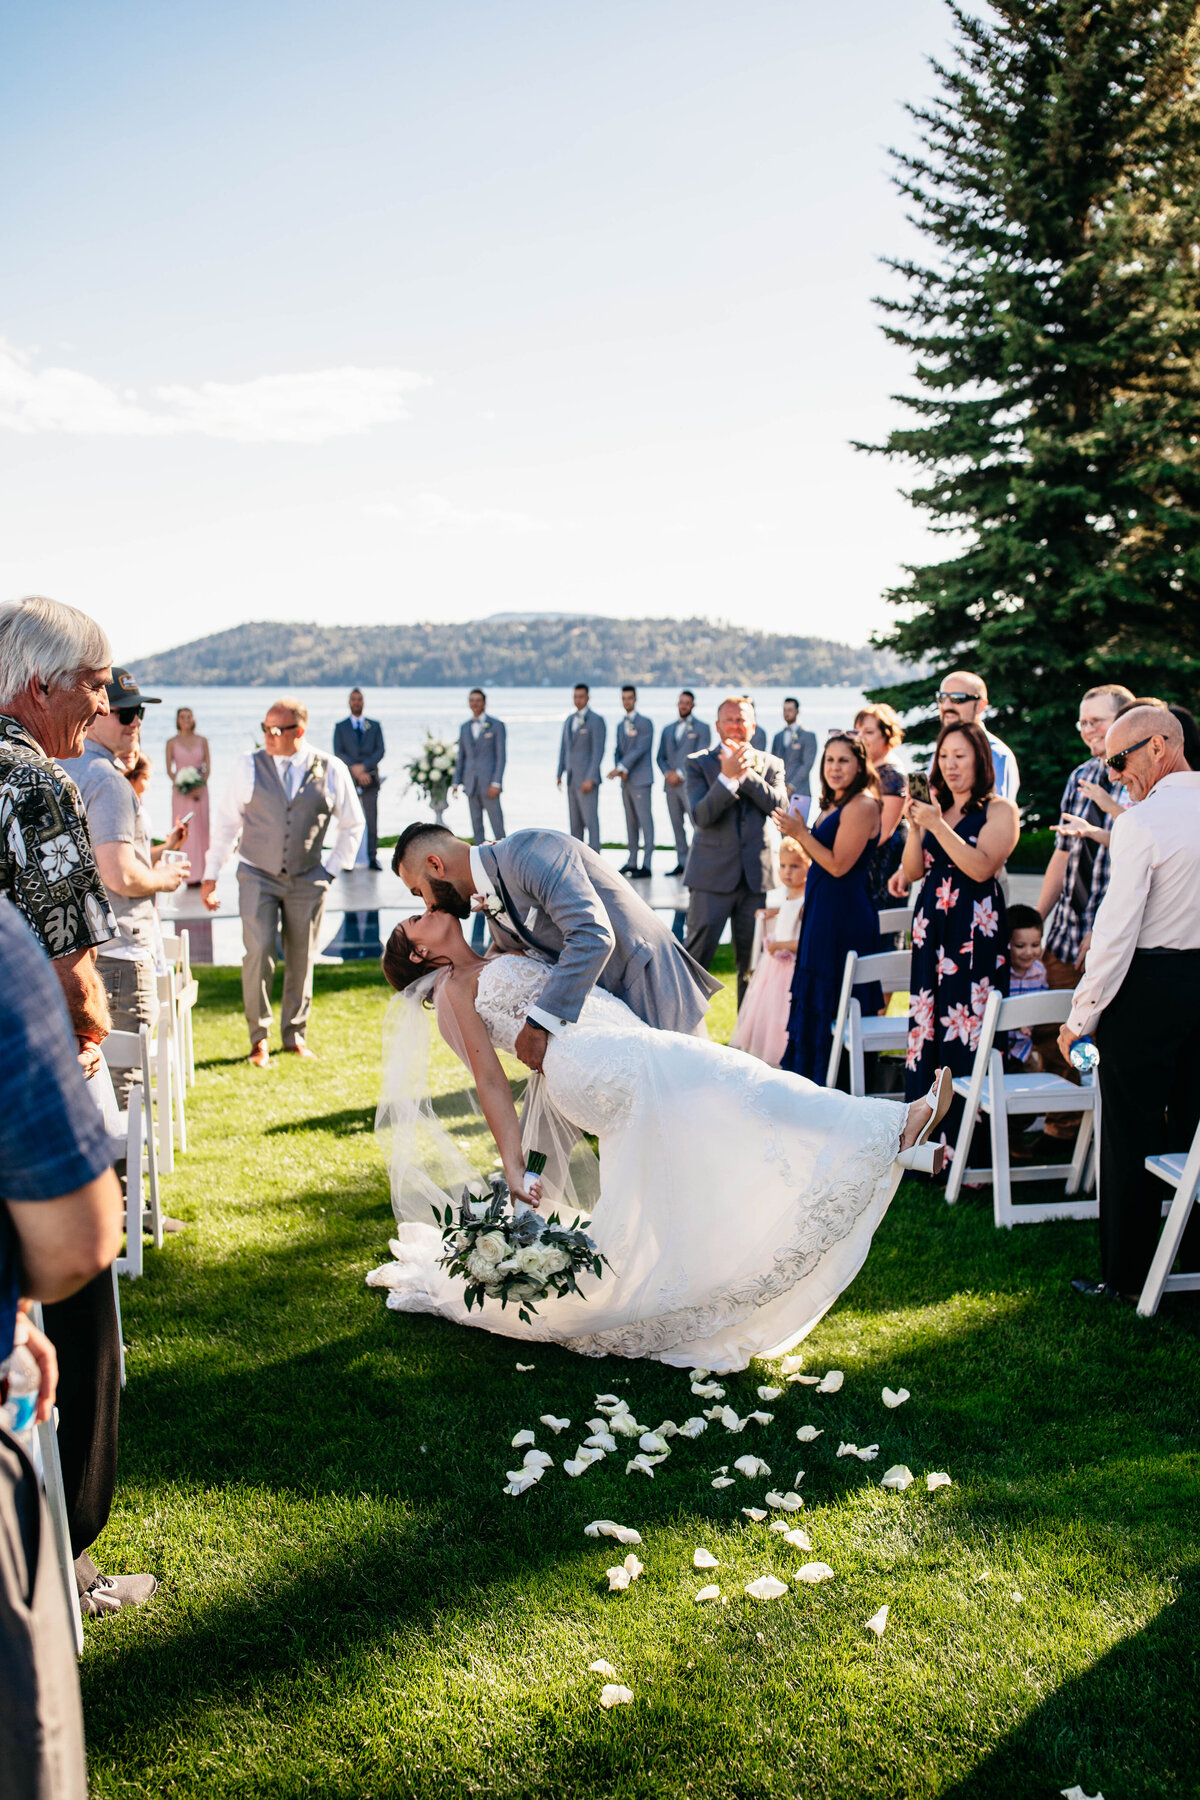 Top Wedding Photographer in Coeur d'Alene Idaho - Clara Jay Photo-3